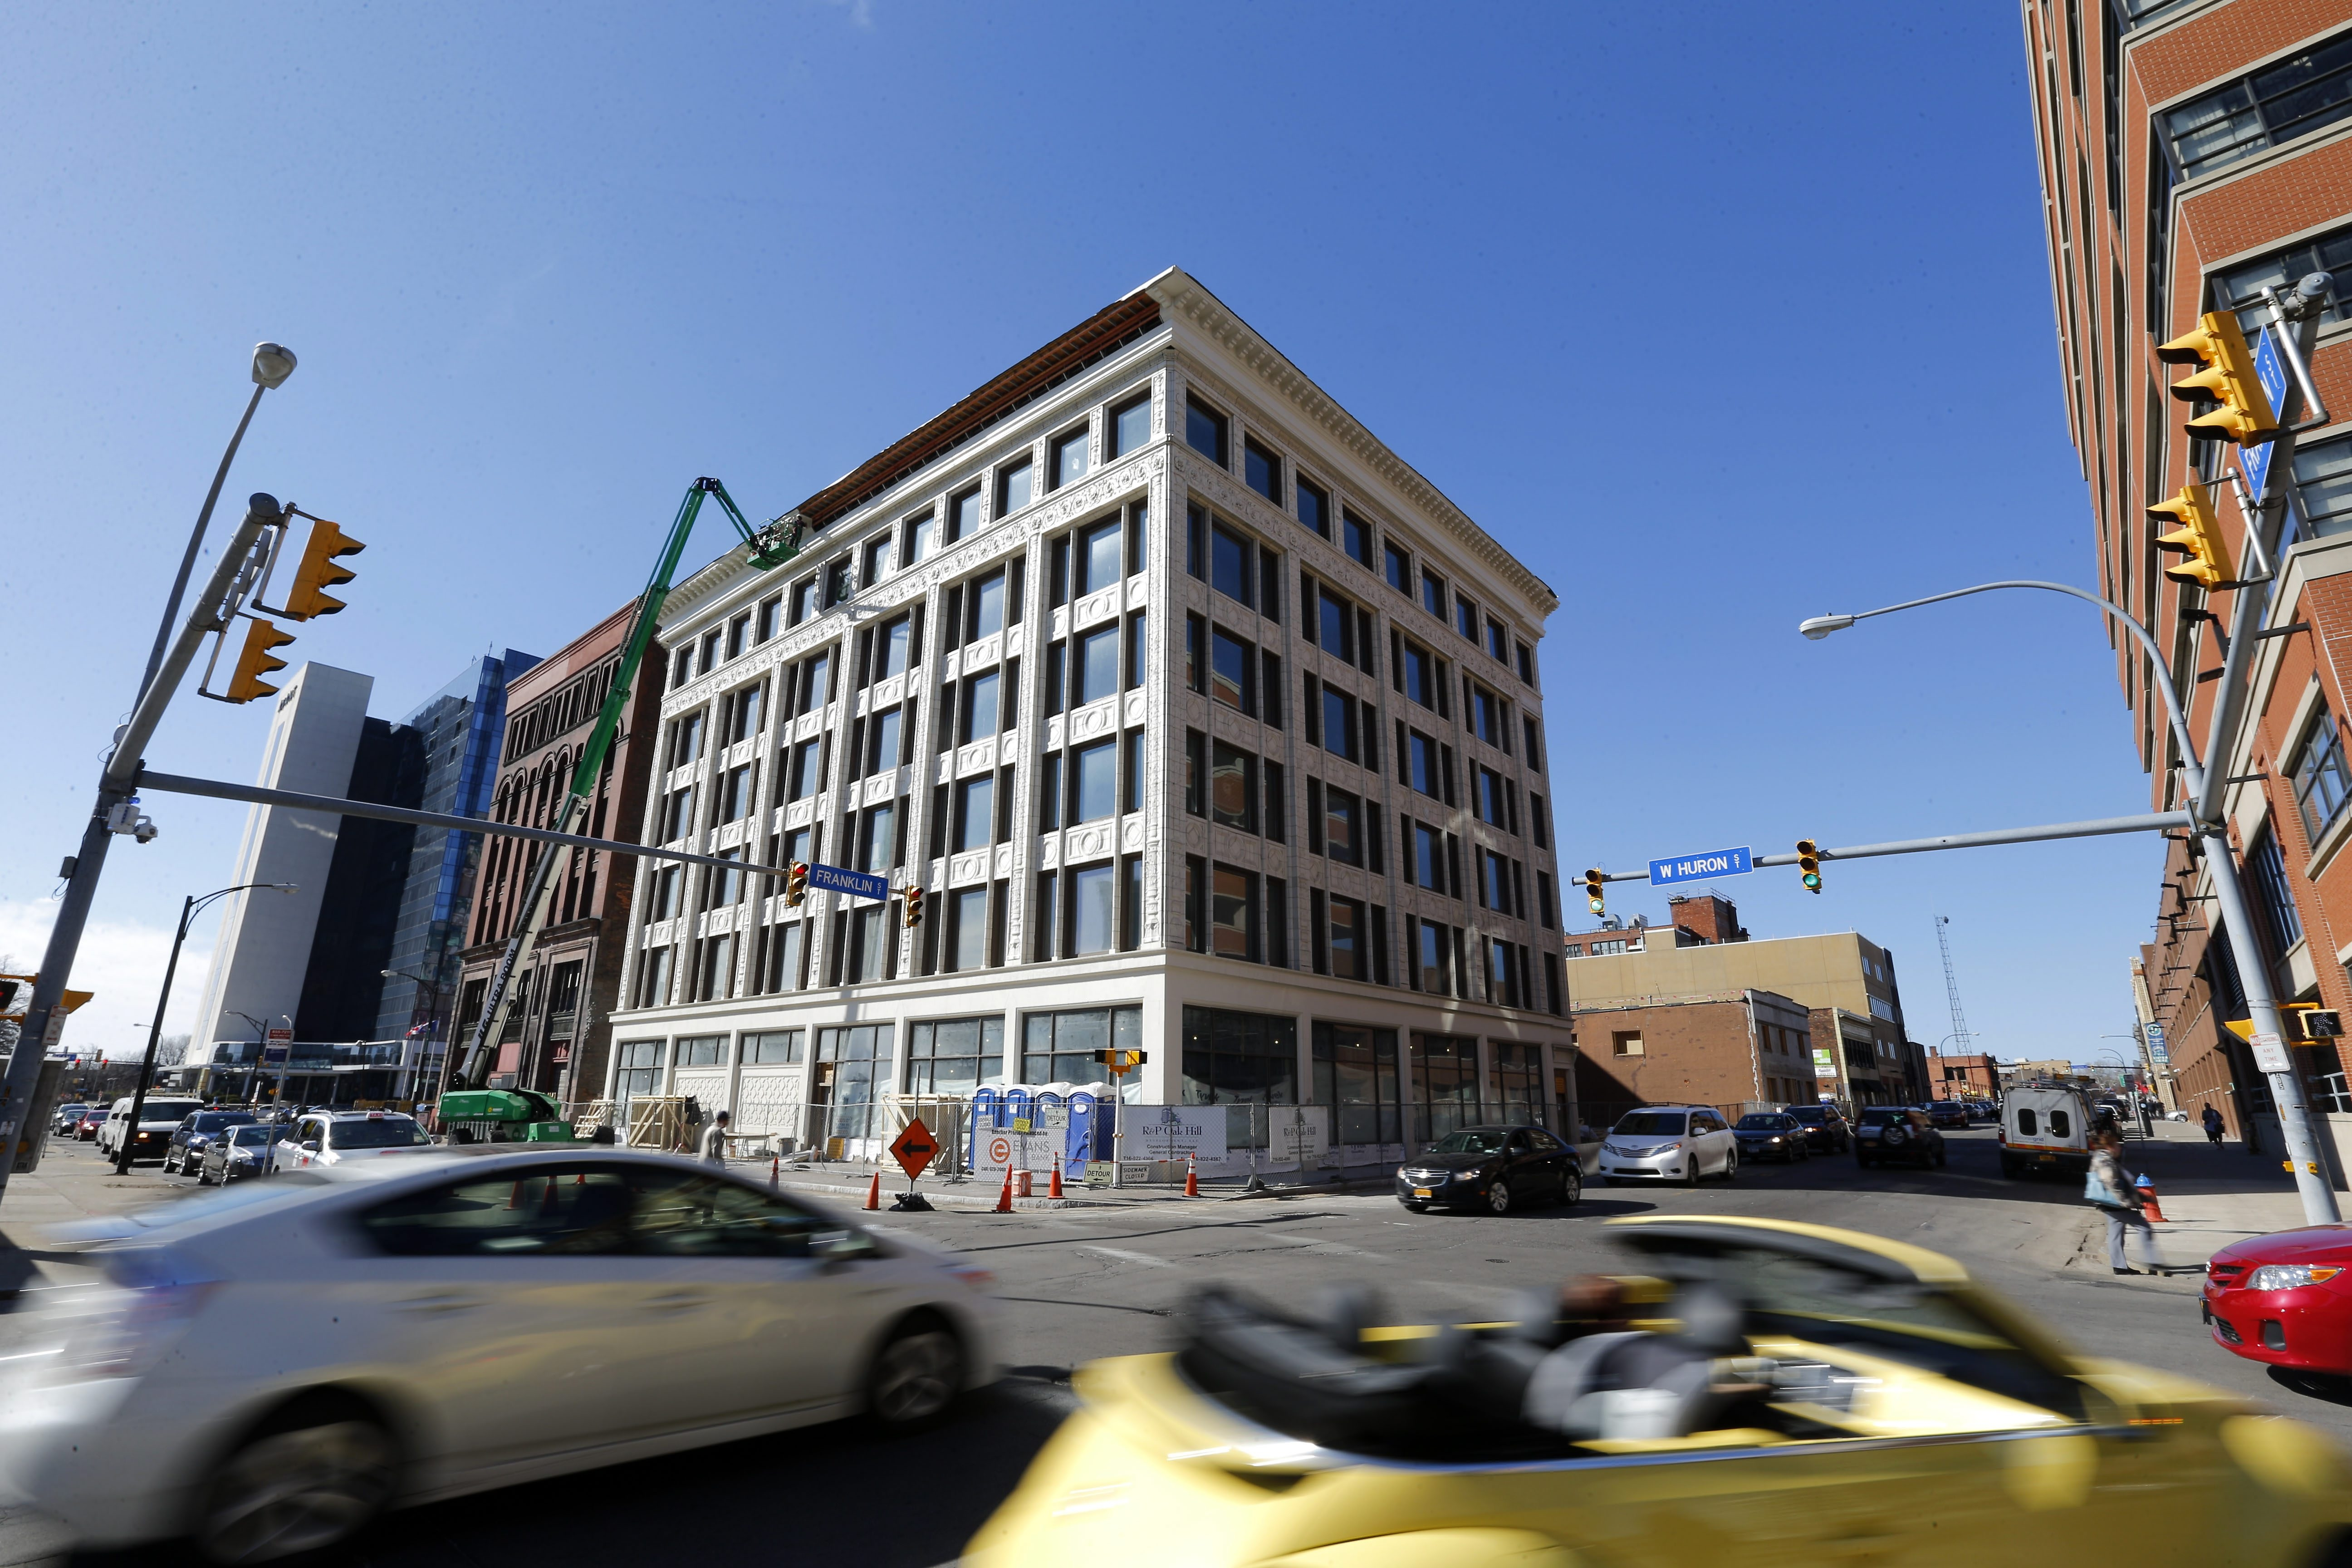 Construction continues on the Curtiss Hotel on Franklin Street, which will reopen later this year as a high-end hotel.